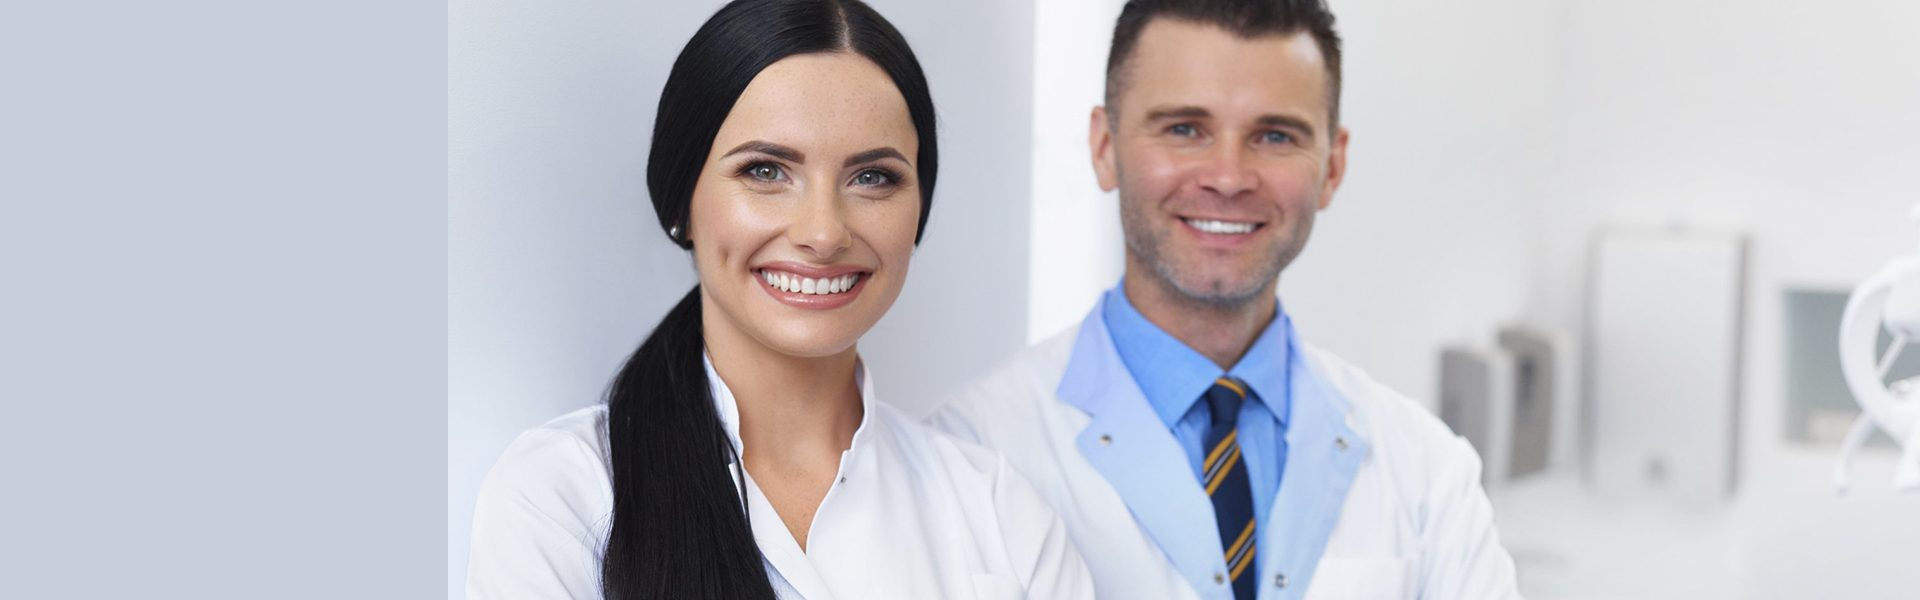 How to Hire and Keep Great Dental Office Staff?